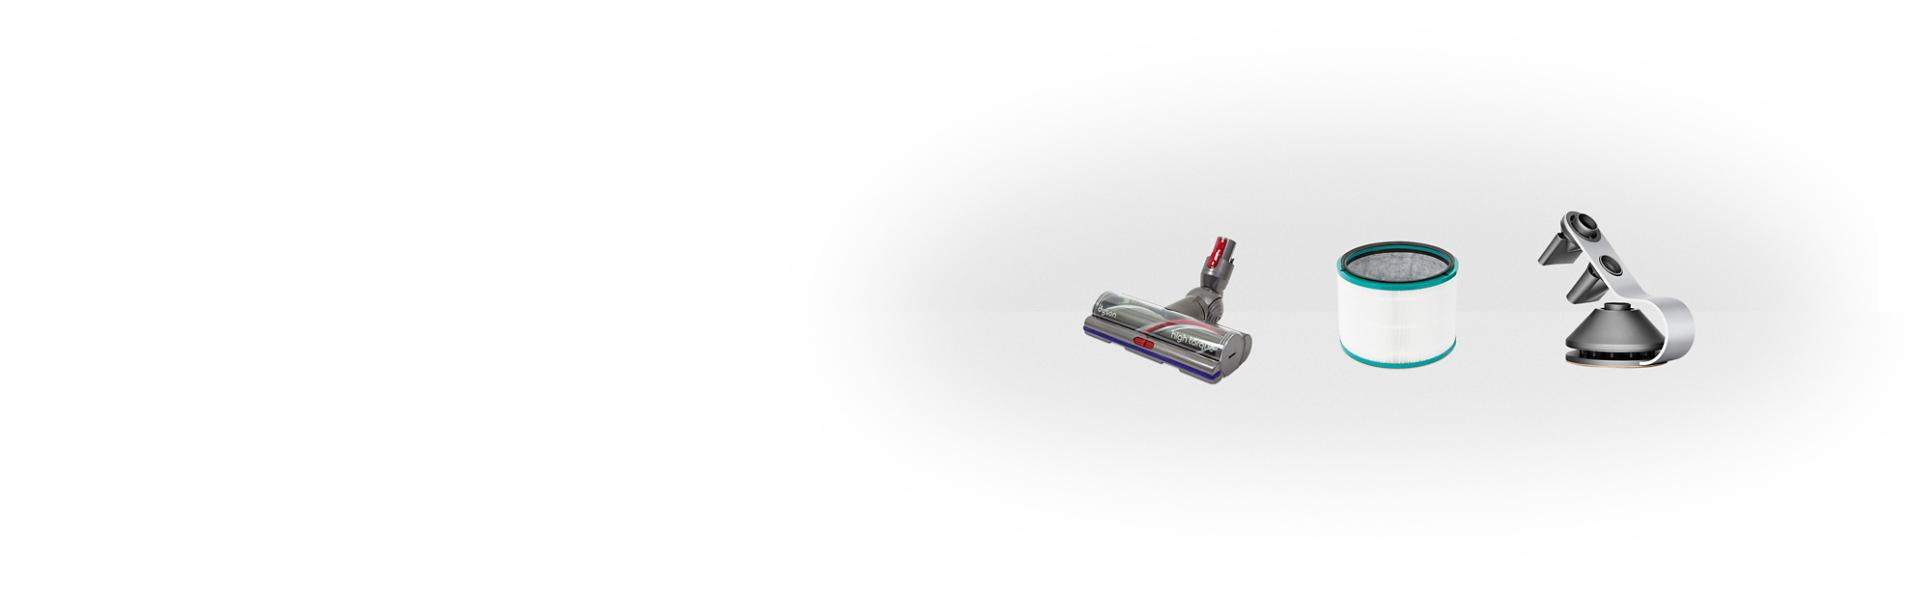 A range of four Dyson cordless vacuums